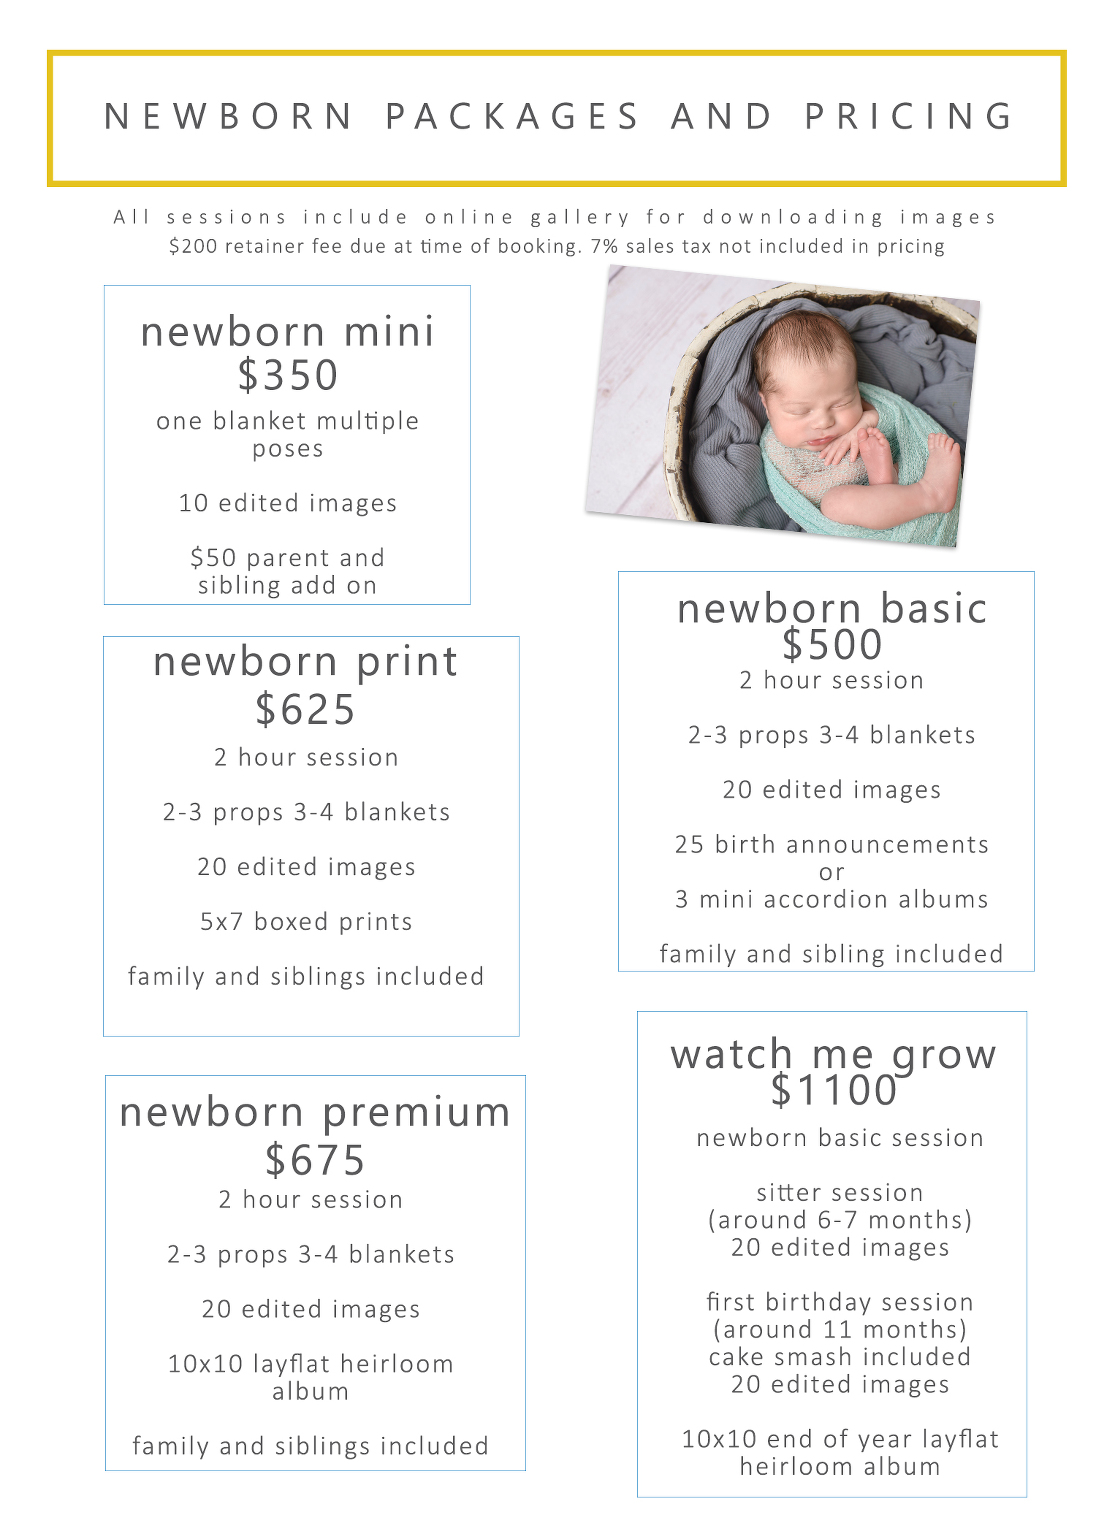 pittsburgh newborn packages and pricing 2018